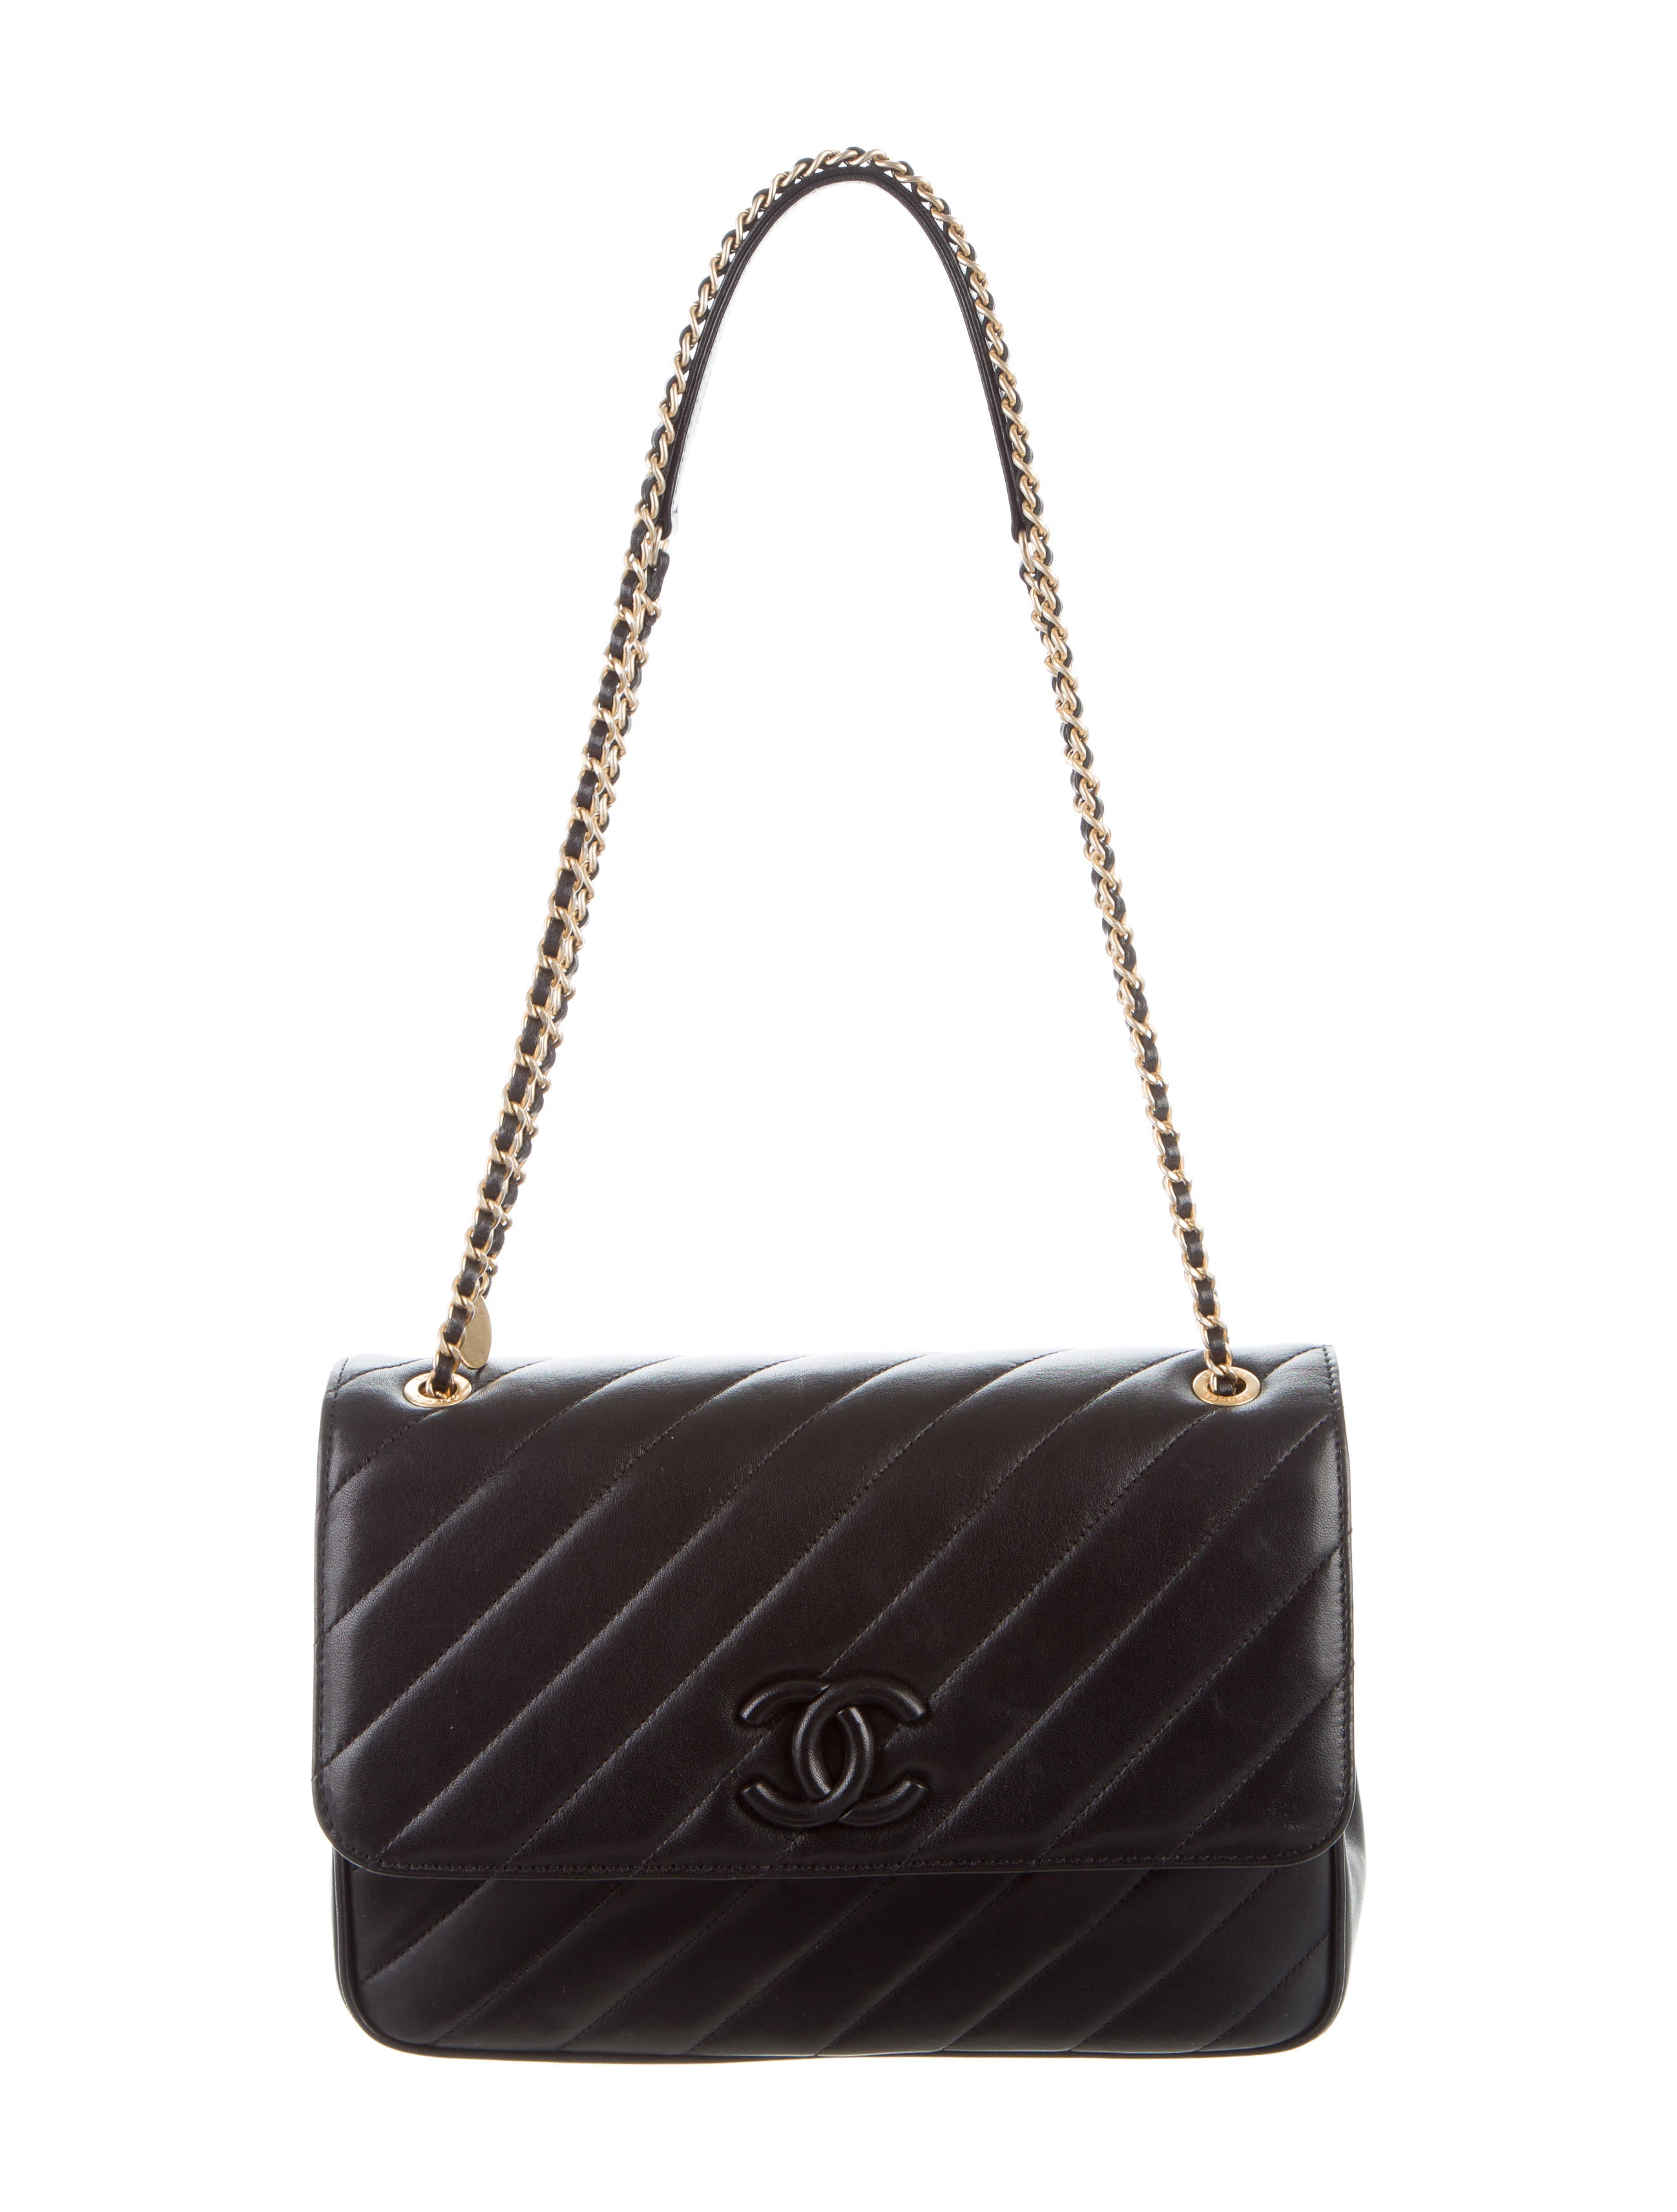 Chanel 2015 Leather Covered Cc Signature Flap Bag